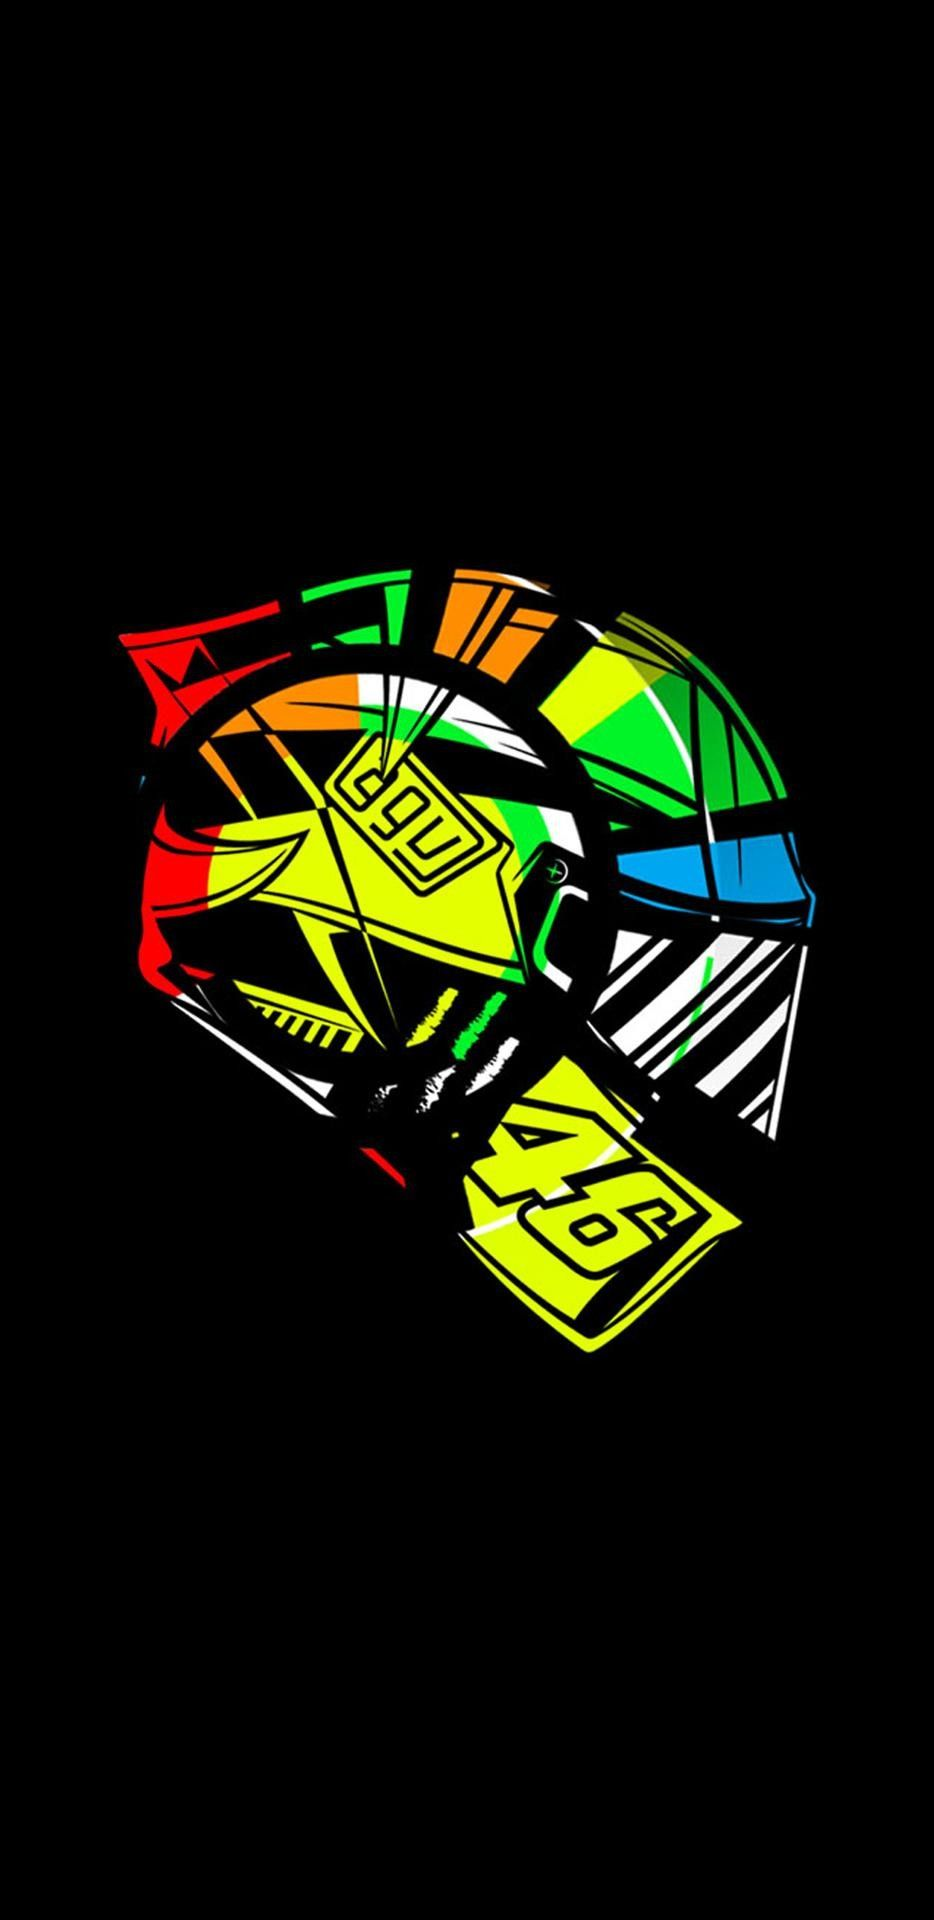 46 29 Yamaha Stickers VR46 Rossi